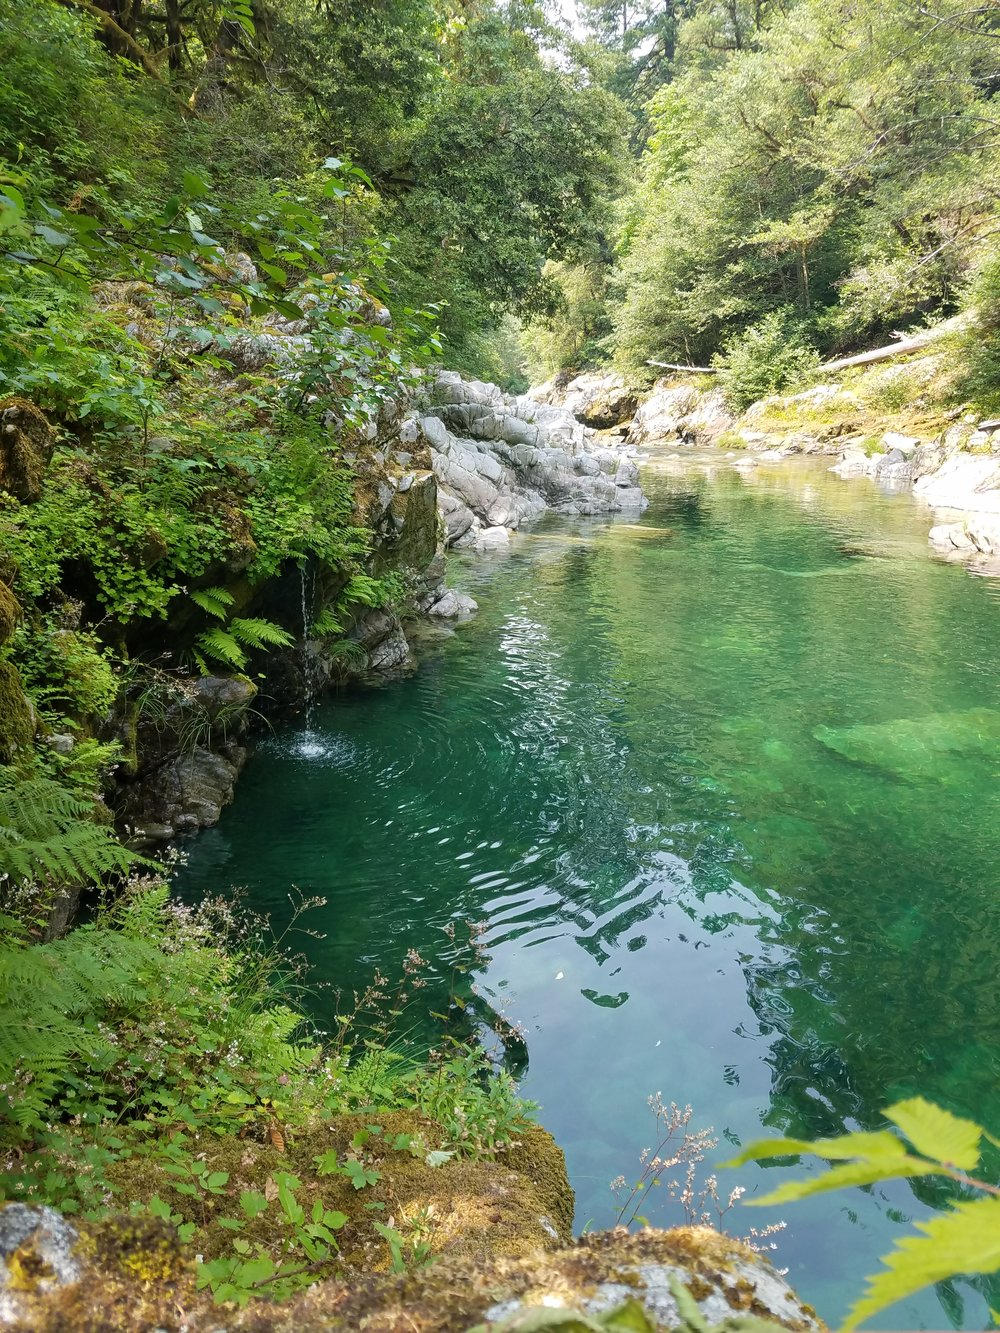 Summer's here and it's time for wild swimming